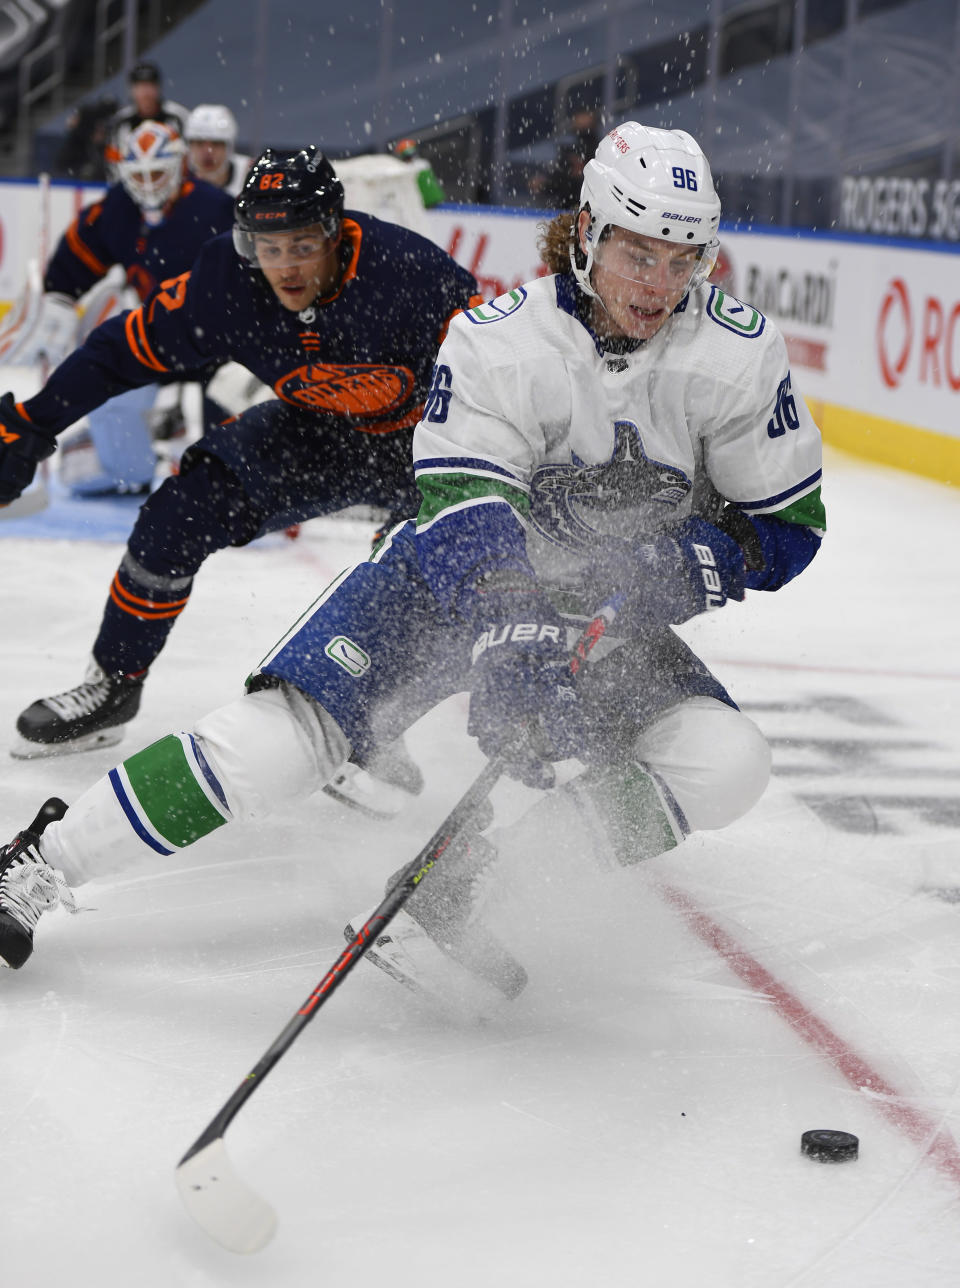 Edmonton Oilers' Caleb Jones (82) chases Vancouver Canucks' Adam Gaudette (96) during the third period of an NHL hockey game Wednesday, Jan. 13, 2021, in Edmonton, Alberta. (Dale MacMillan/The Canadian Press via AP)